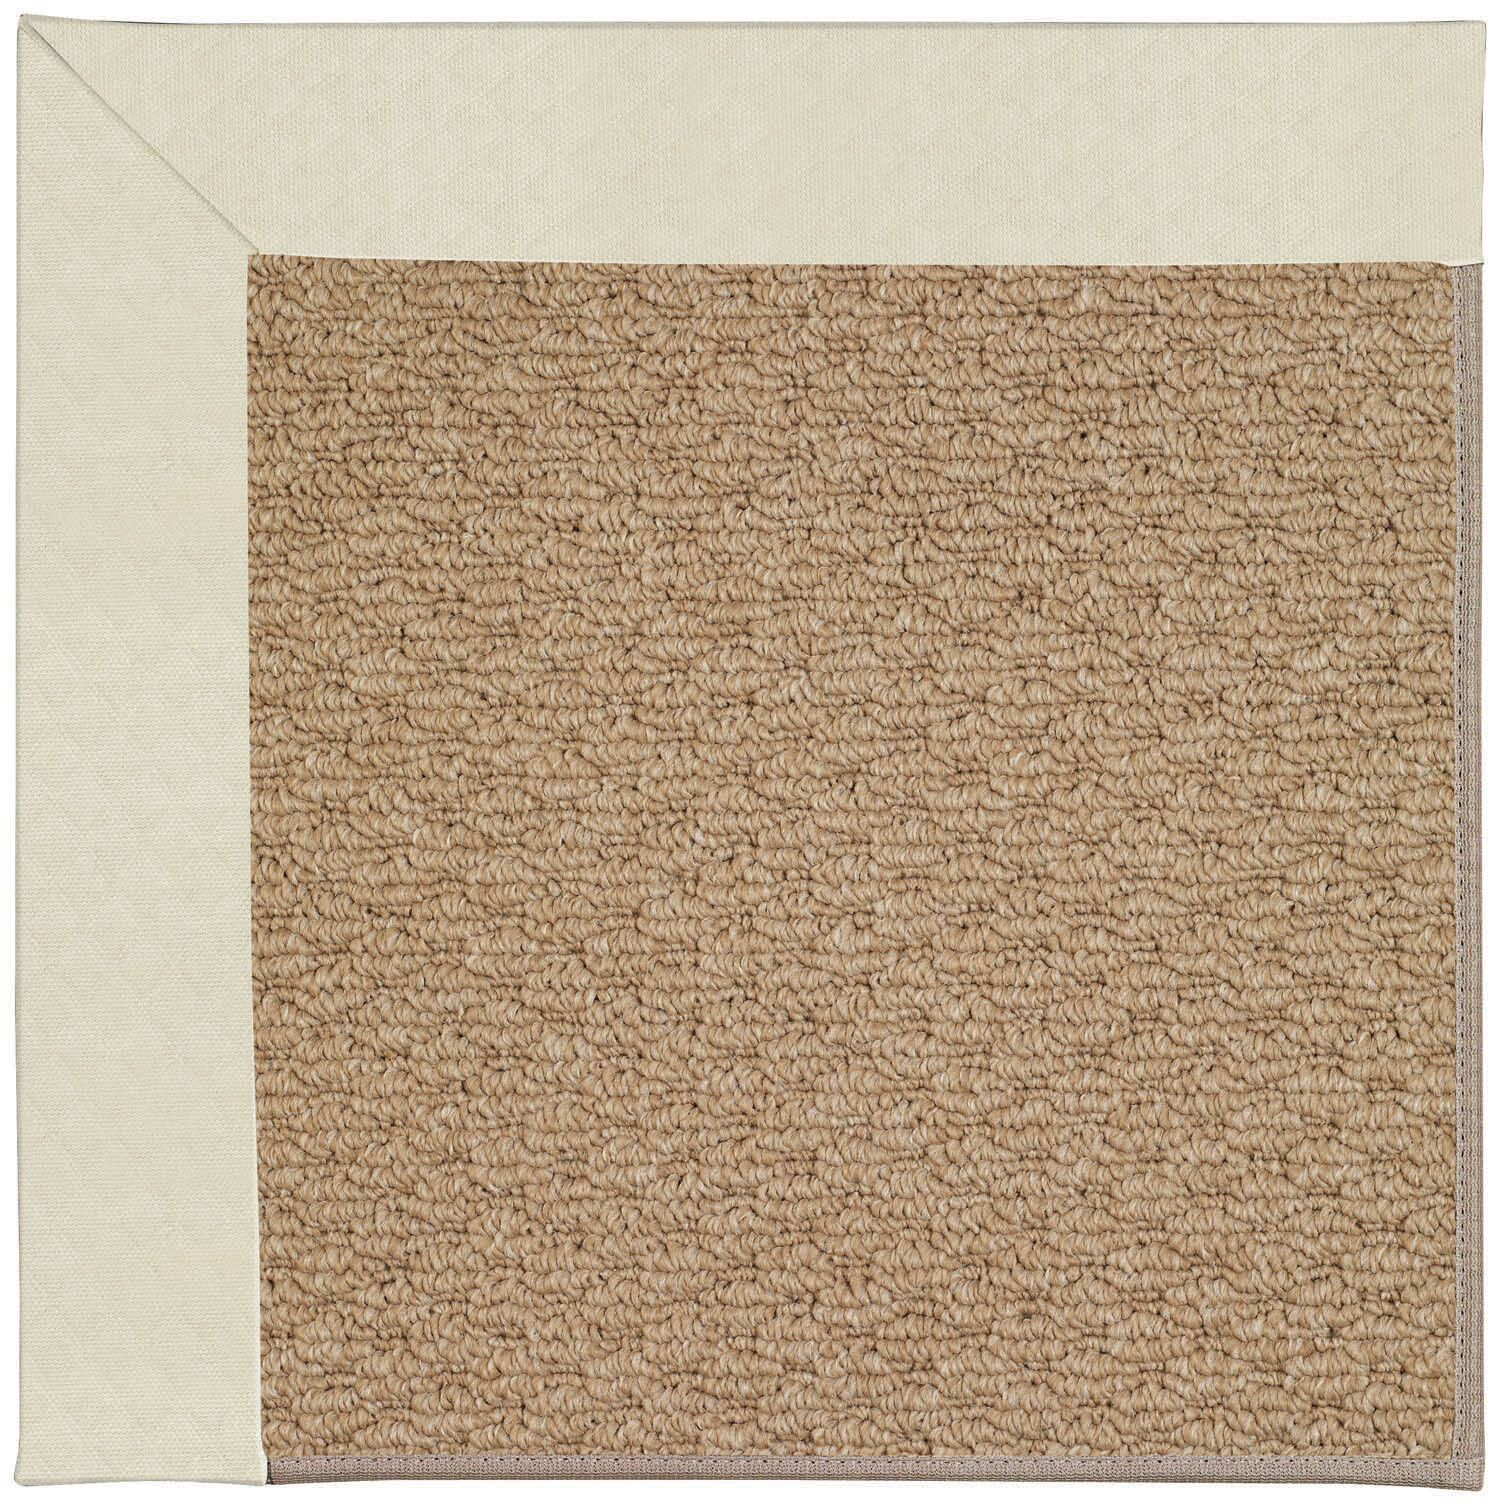 Lisle Machine Tufted Cream/Brown Indoor/Outdoor Area Rug Rug Size: Rectangle 4' x 6'